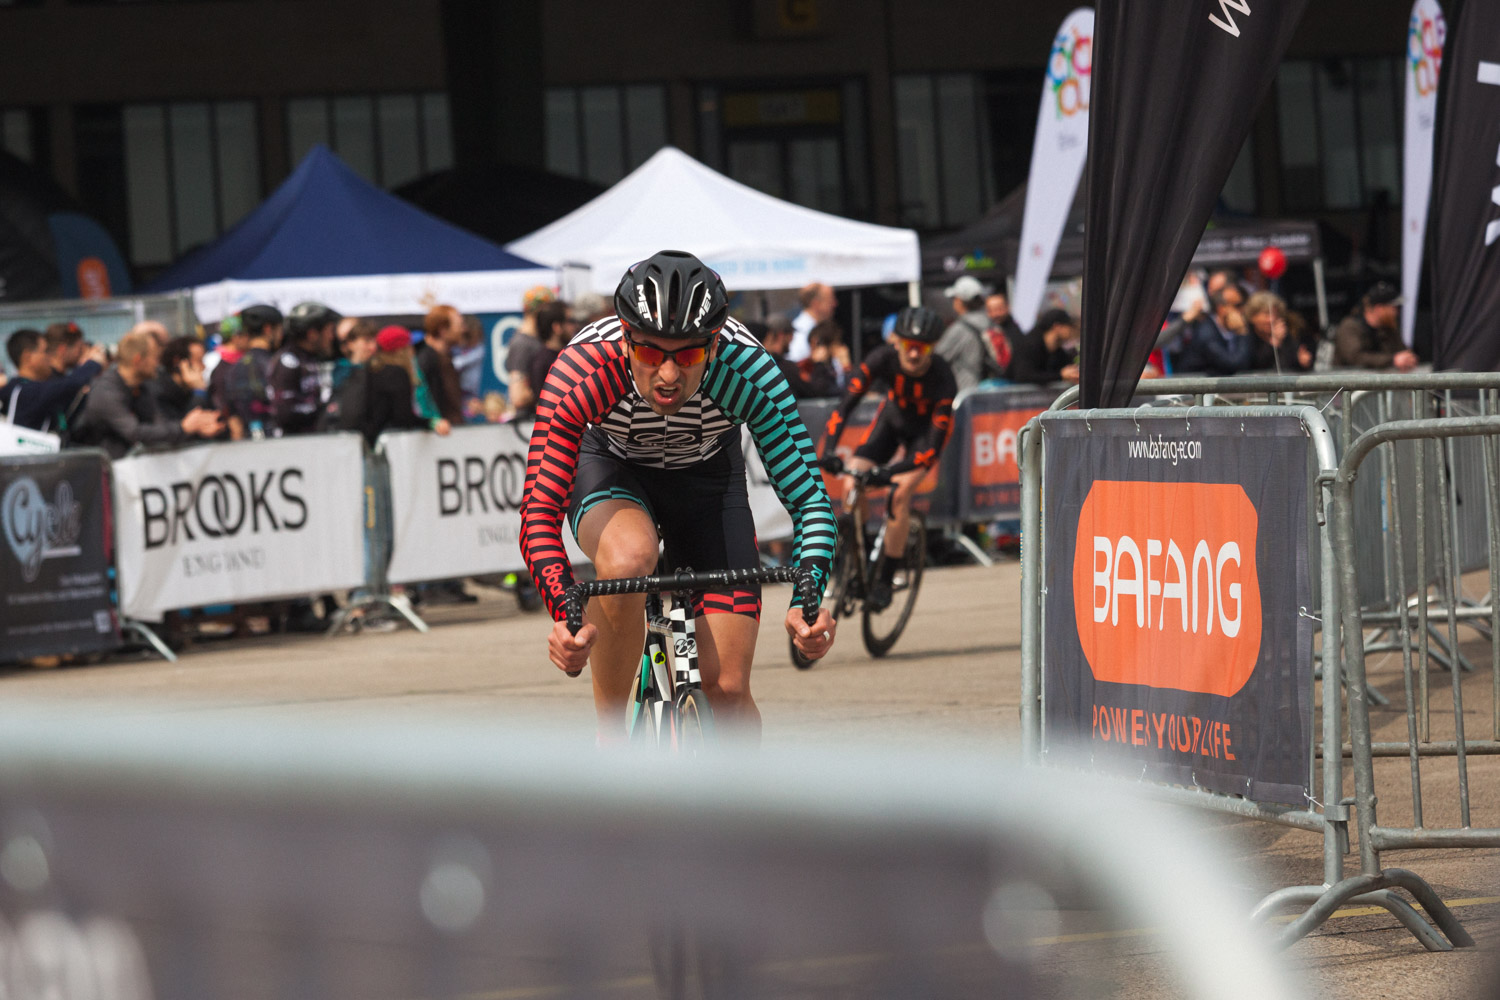 8brcrit 8bar rookies fixed gear crit 6 - Schnell, schneller, 8bar crit 2018 - der Rennbericht!